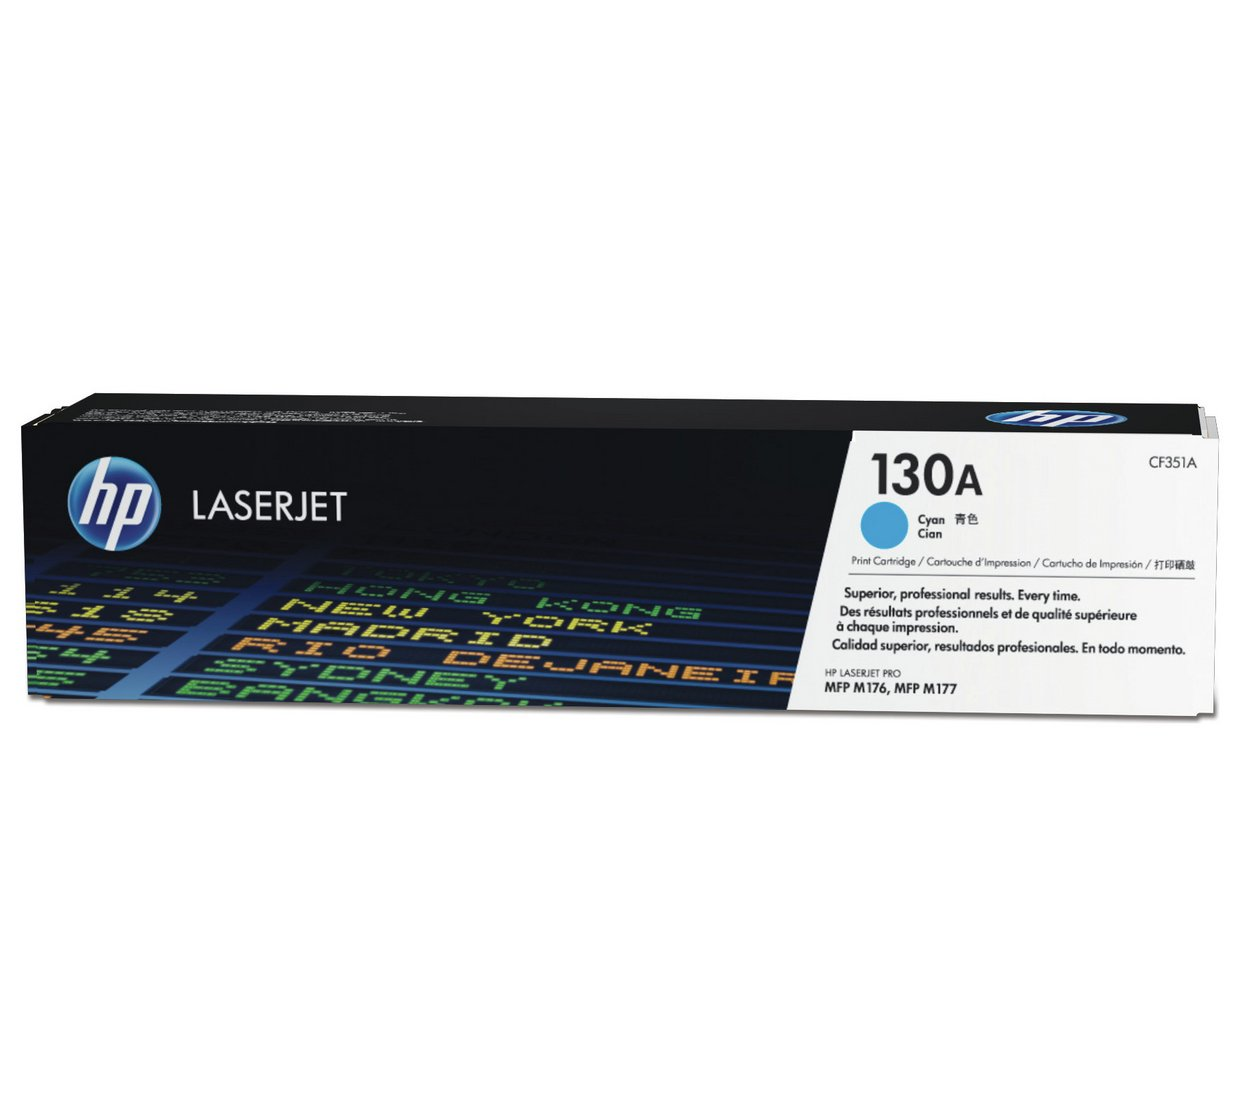 HP 130A CF351A Original Cyan LaserJet Toner Cartridge